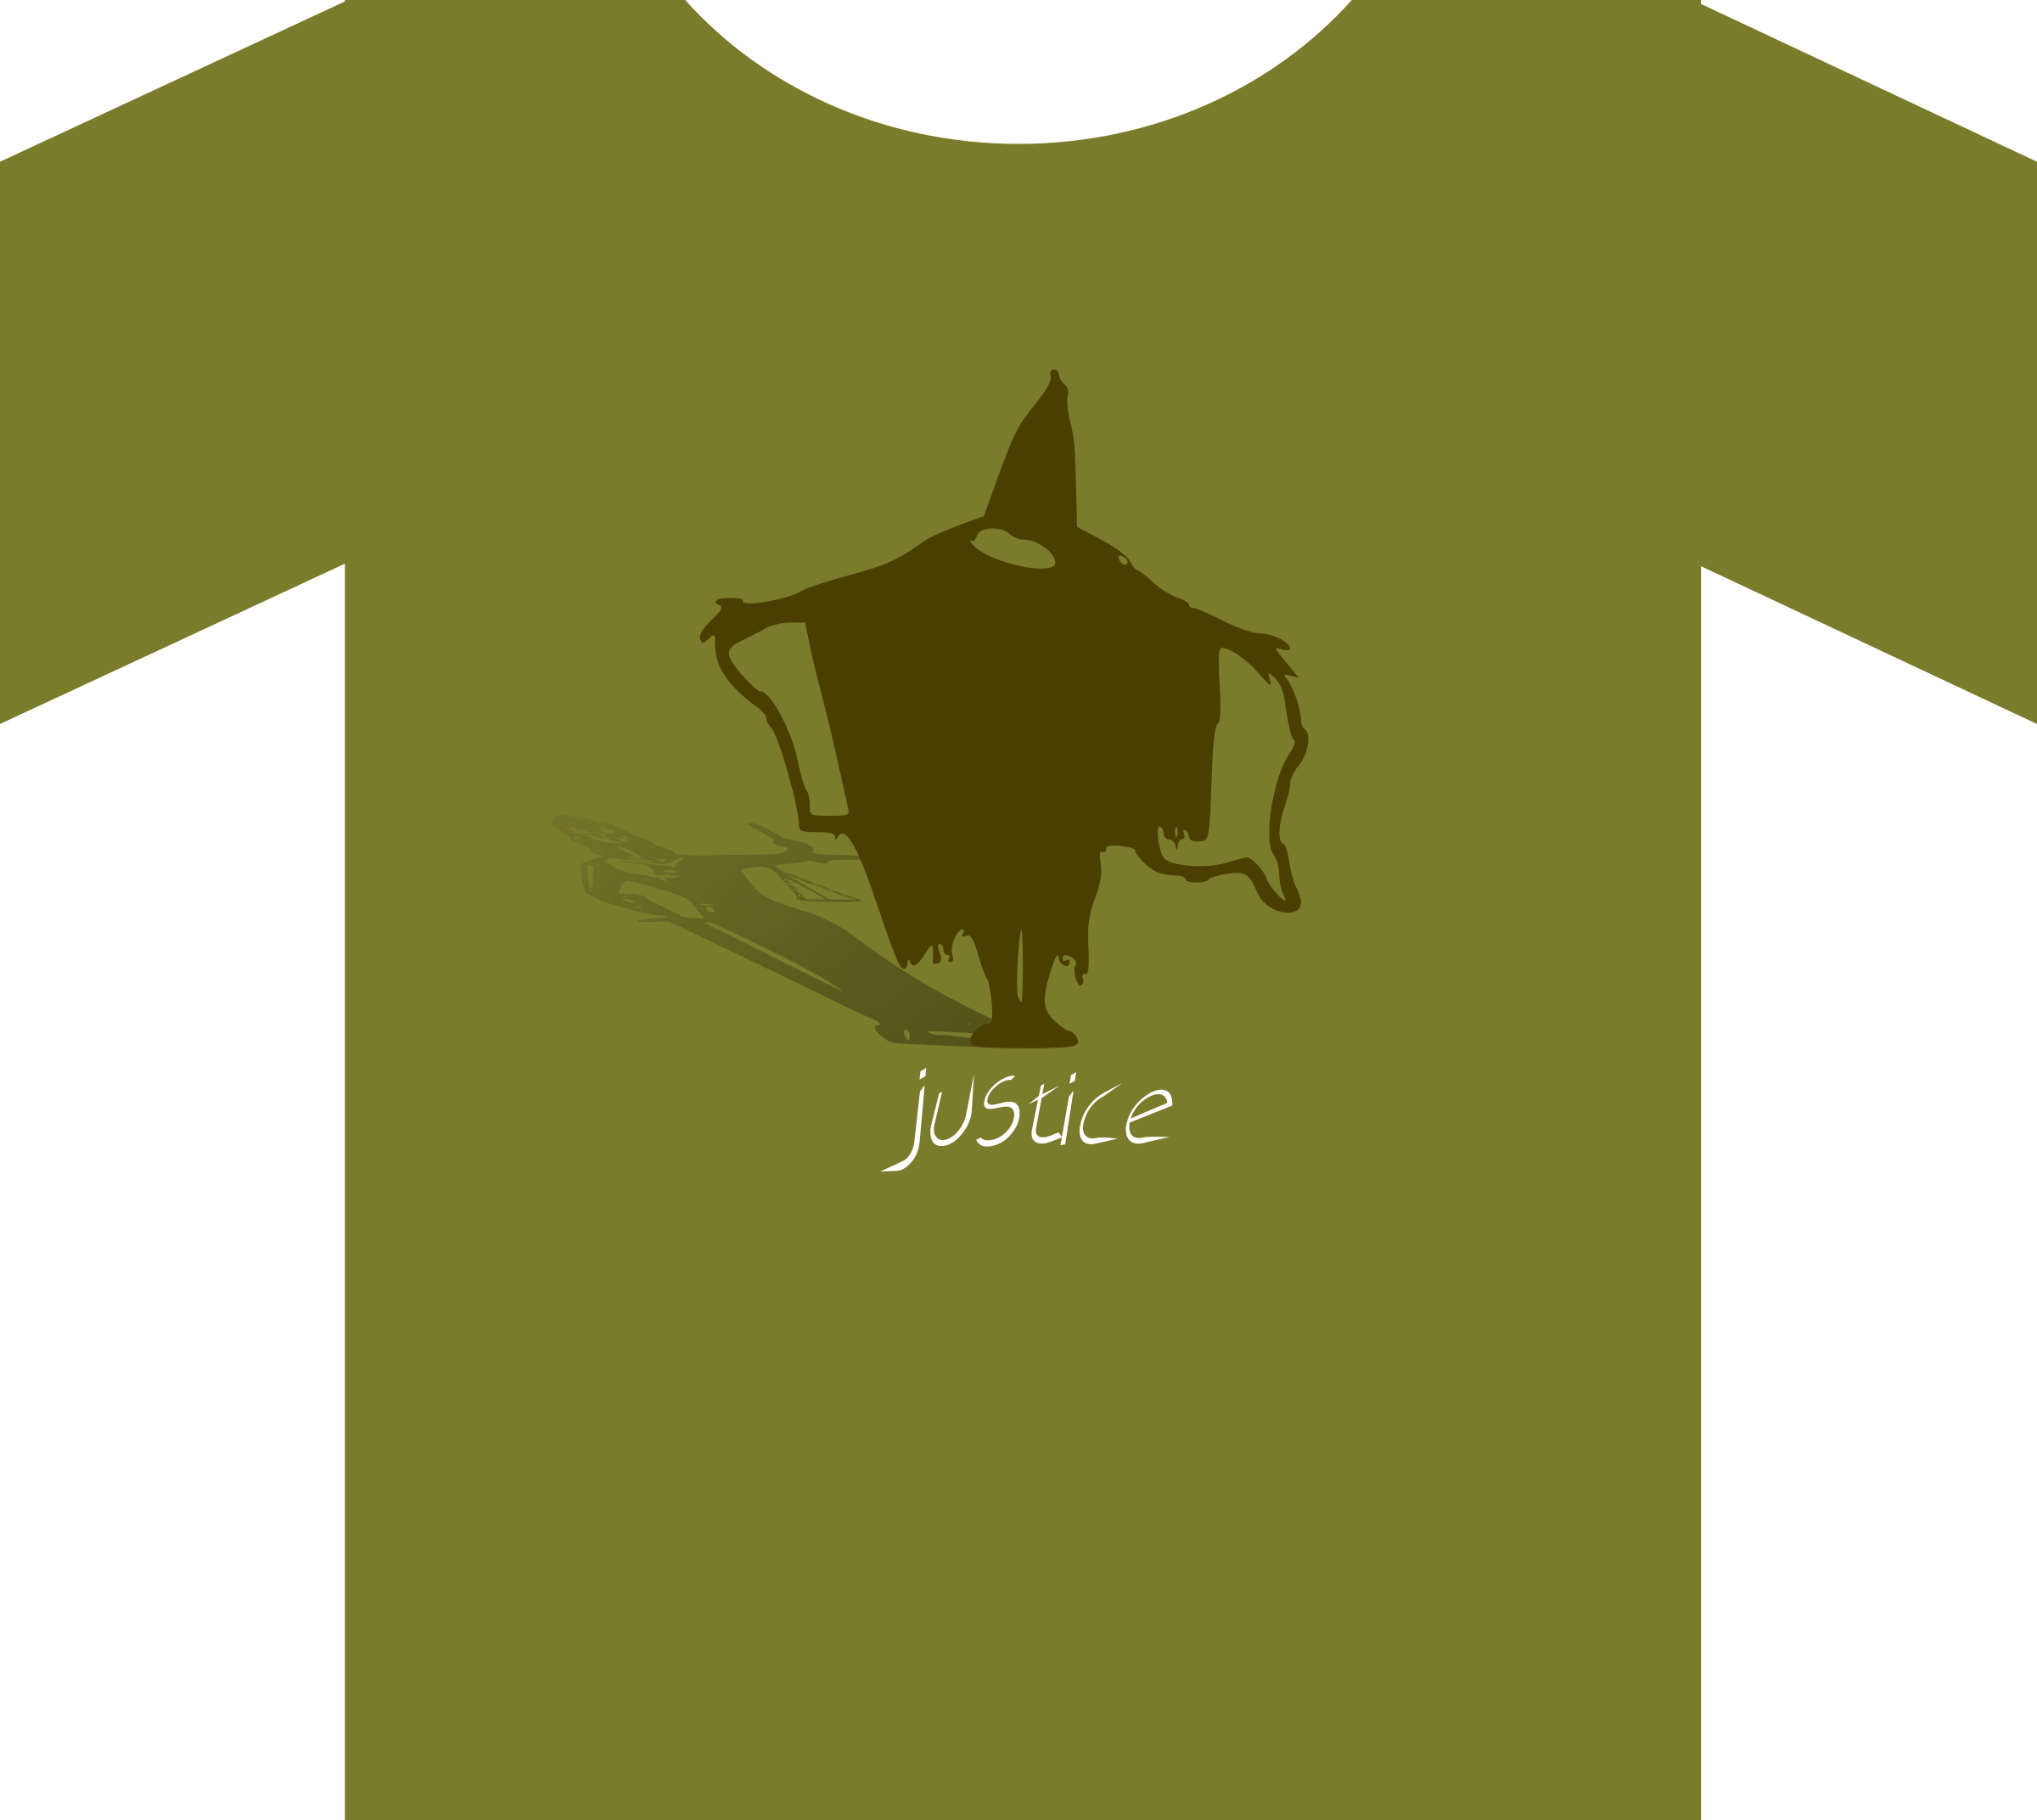 Justice by ok1hra